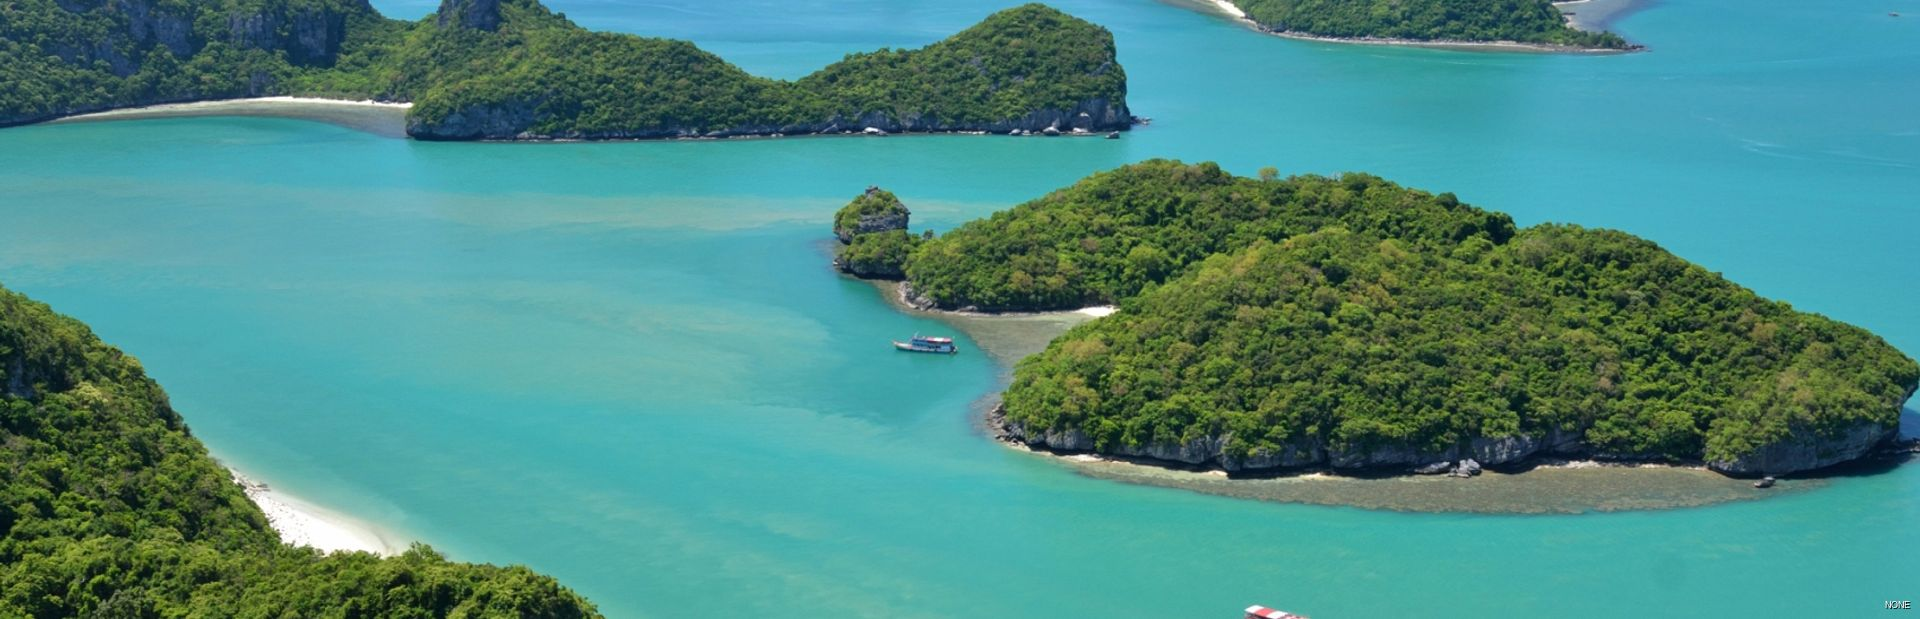 Discover the Secret Locations of Thailand on your Charter Yacht